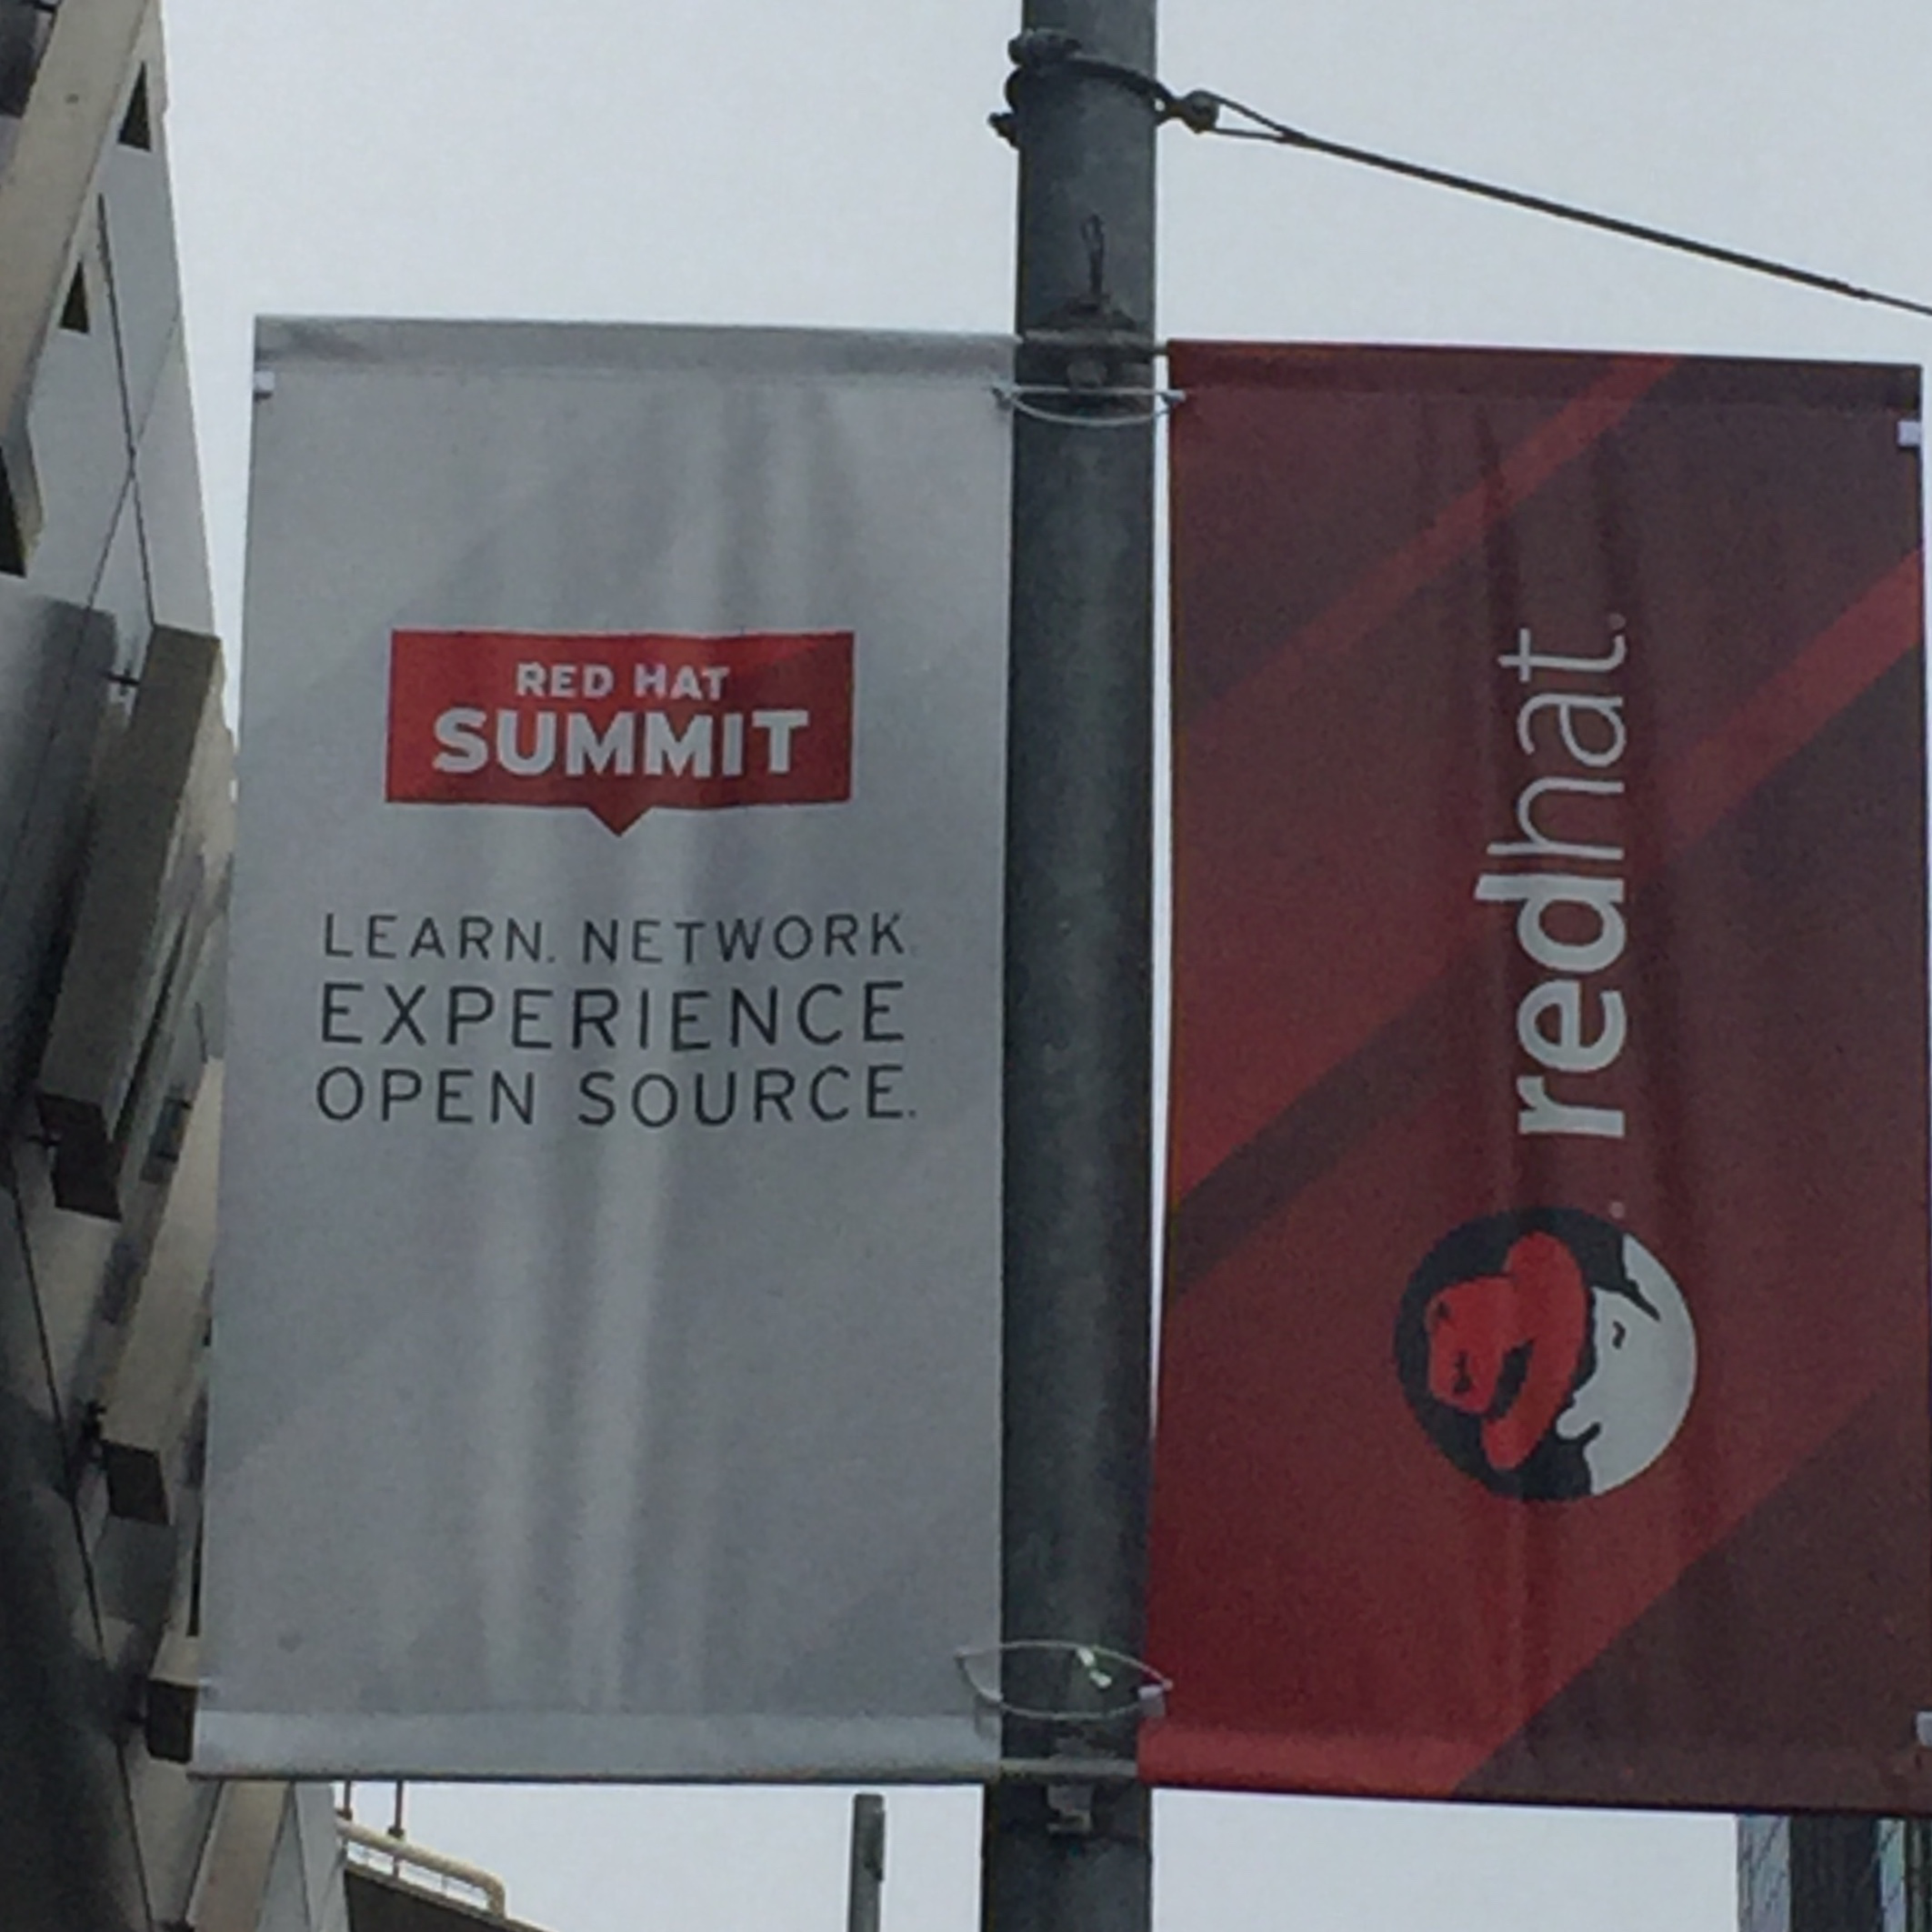 Street Signs for the Red Hat Summit